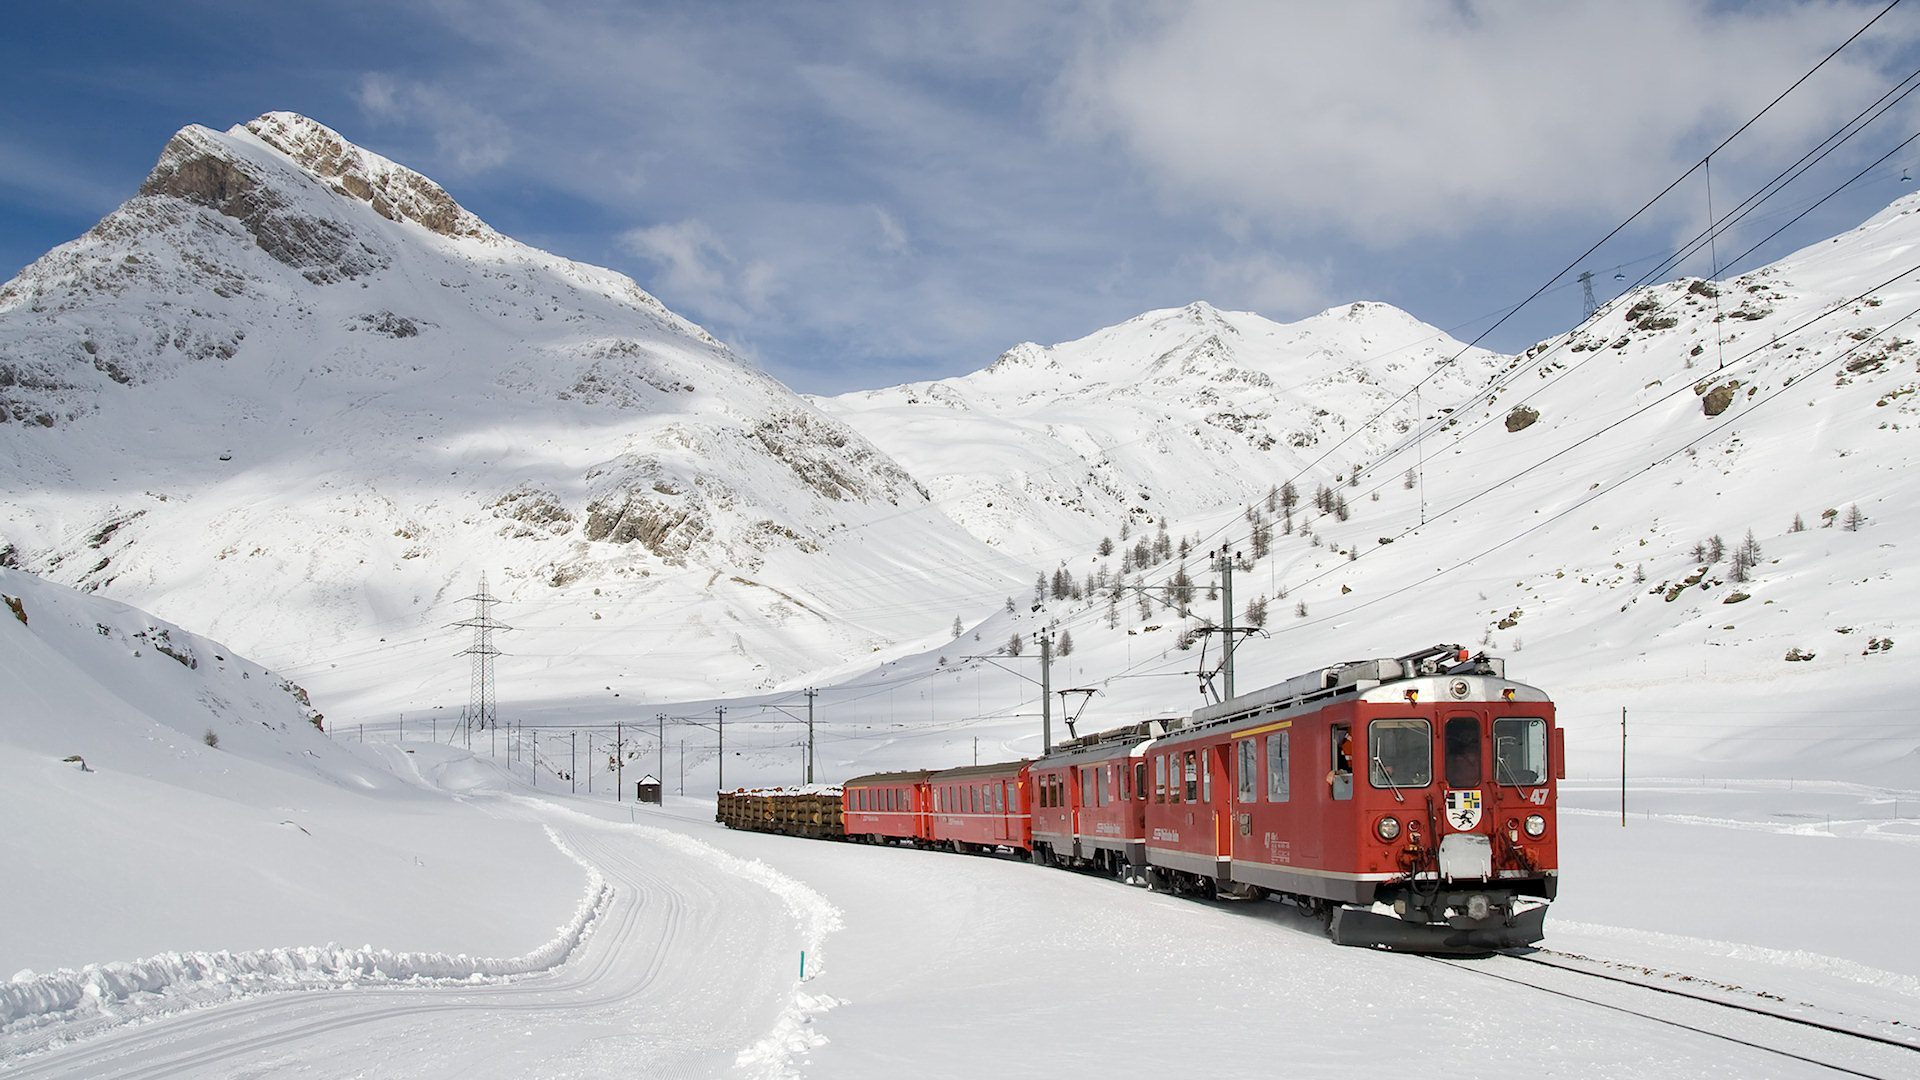 Snow Train Wallpaper